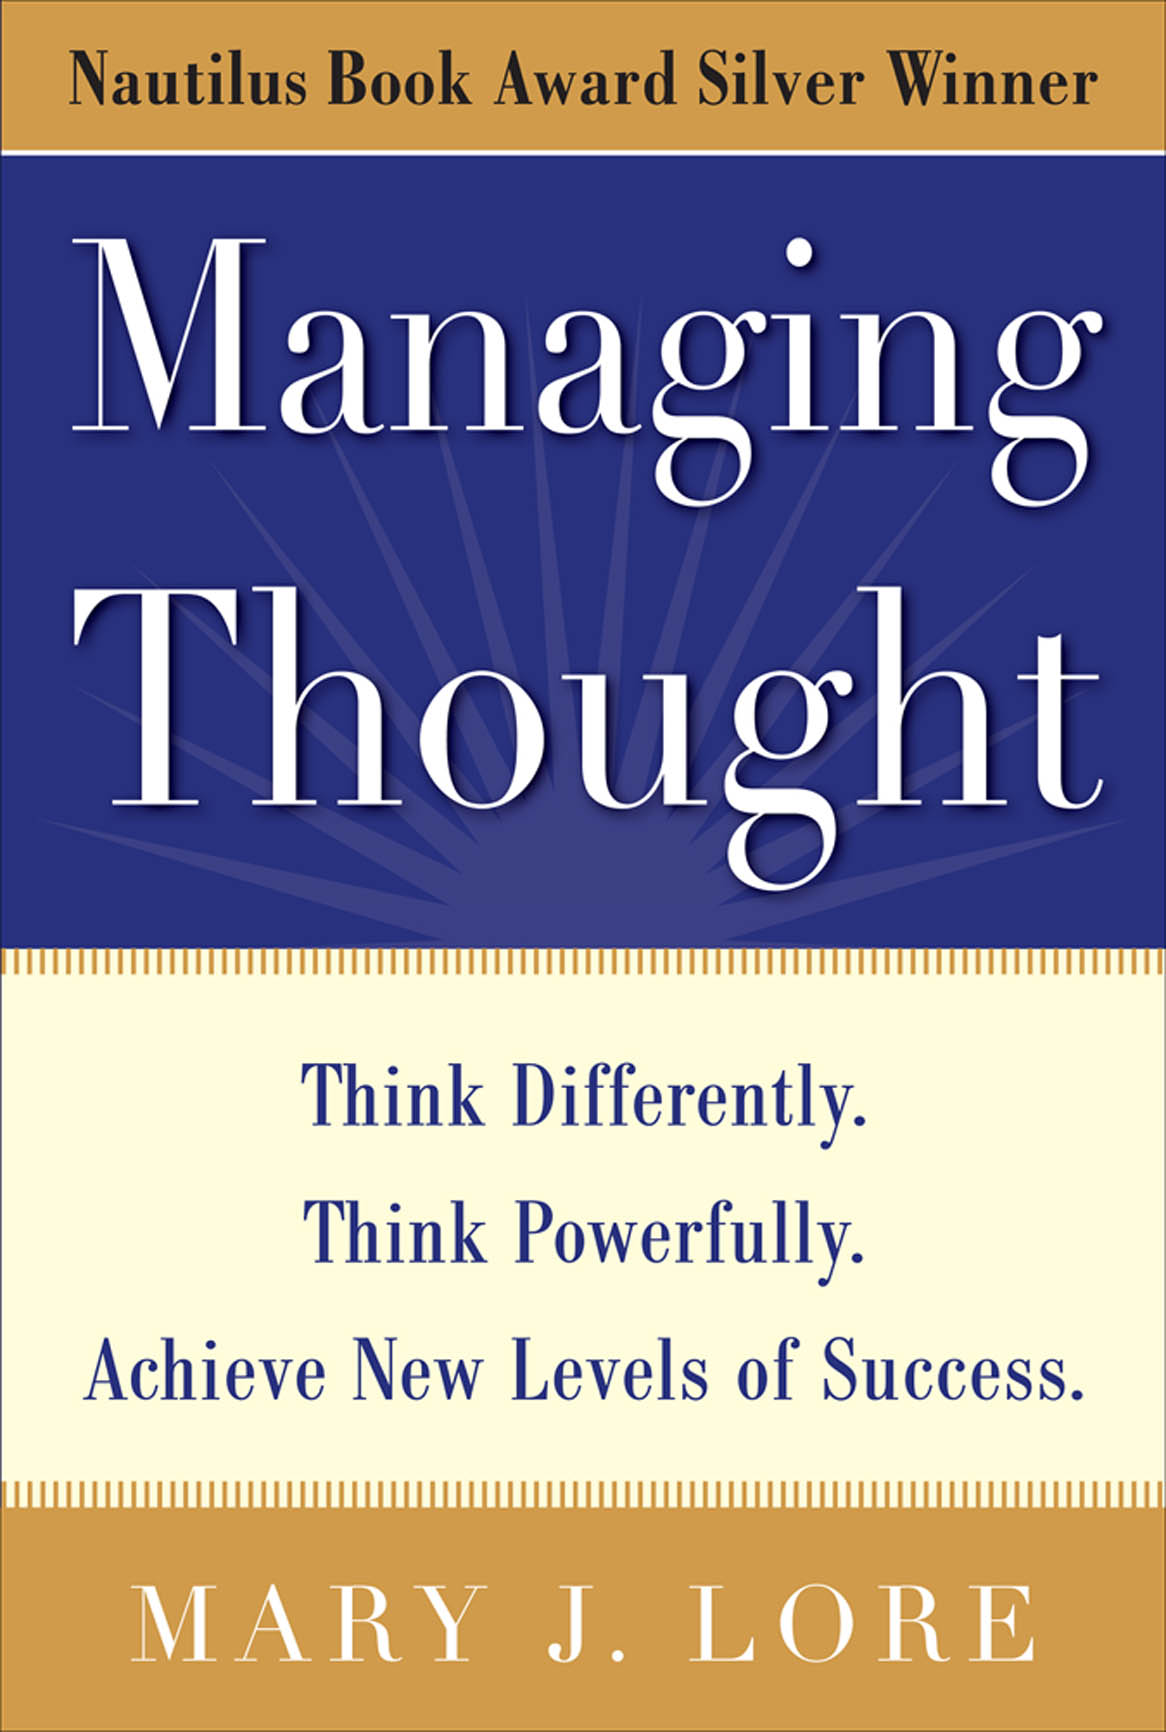 Download Ebook Managing Thought: Think Differently. Think Powerfully. Achieve New Levels of Success by Mary J. Lore Pdf